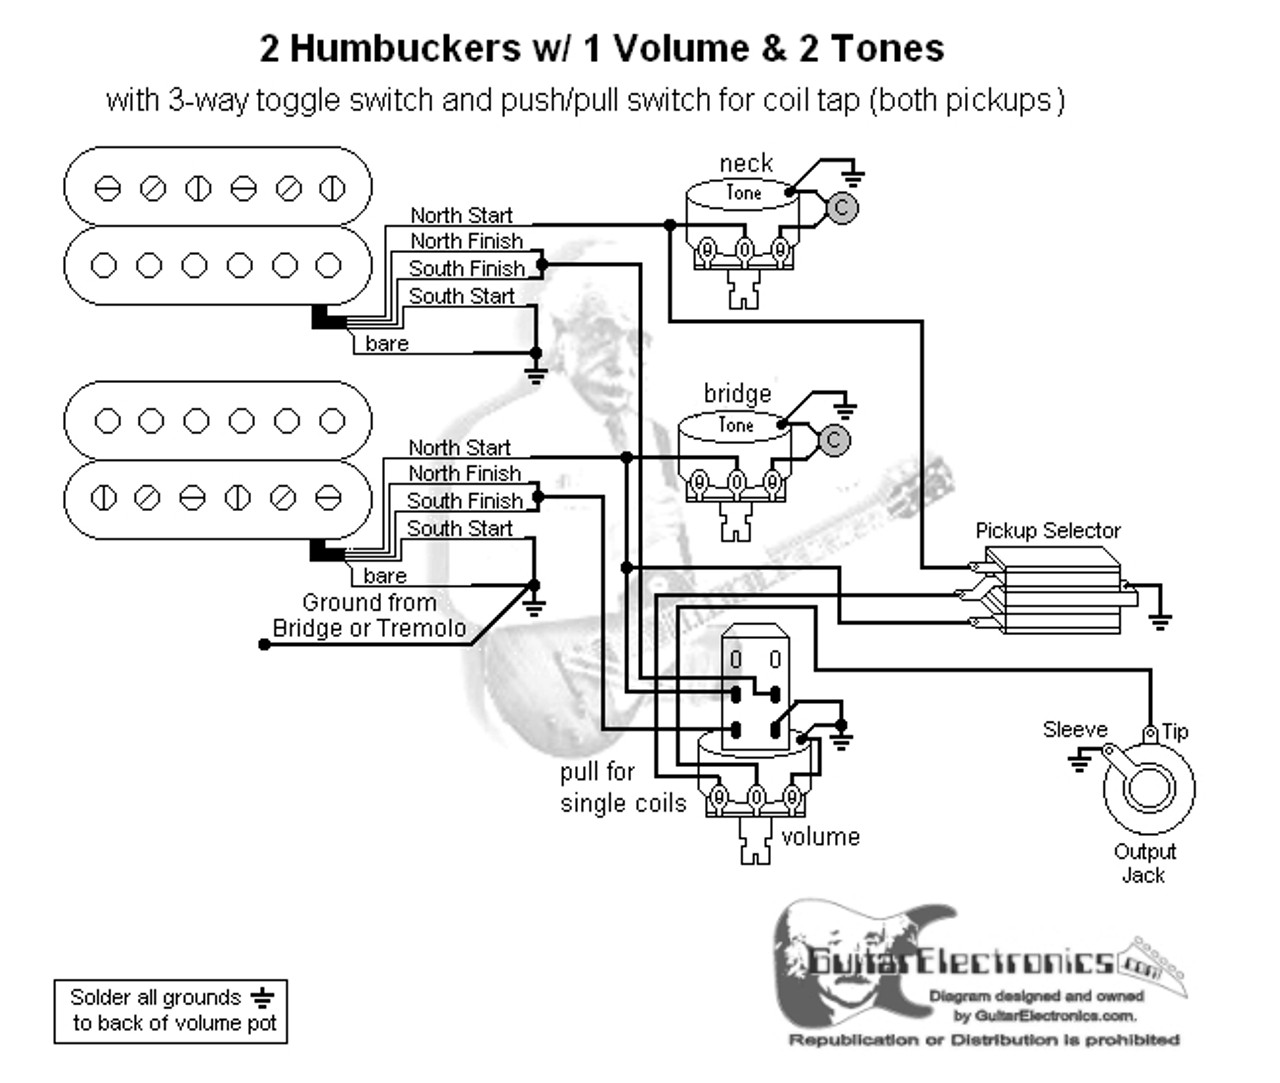 small resolution of 2 humbuckers 3 way toggle switch 1 volume 2 tones coil tap wiring diagram 2 humbuckers 3way toggle switch 1 volume 2 tones coil